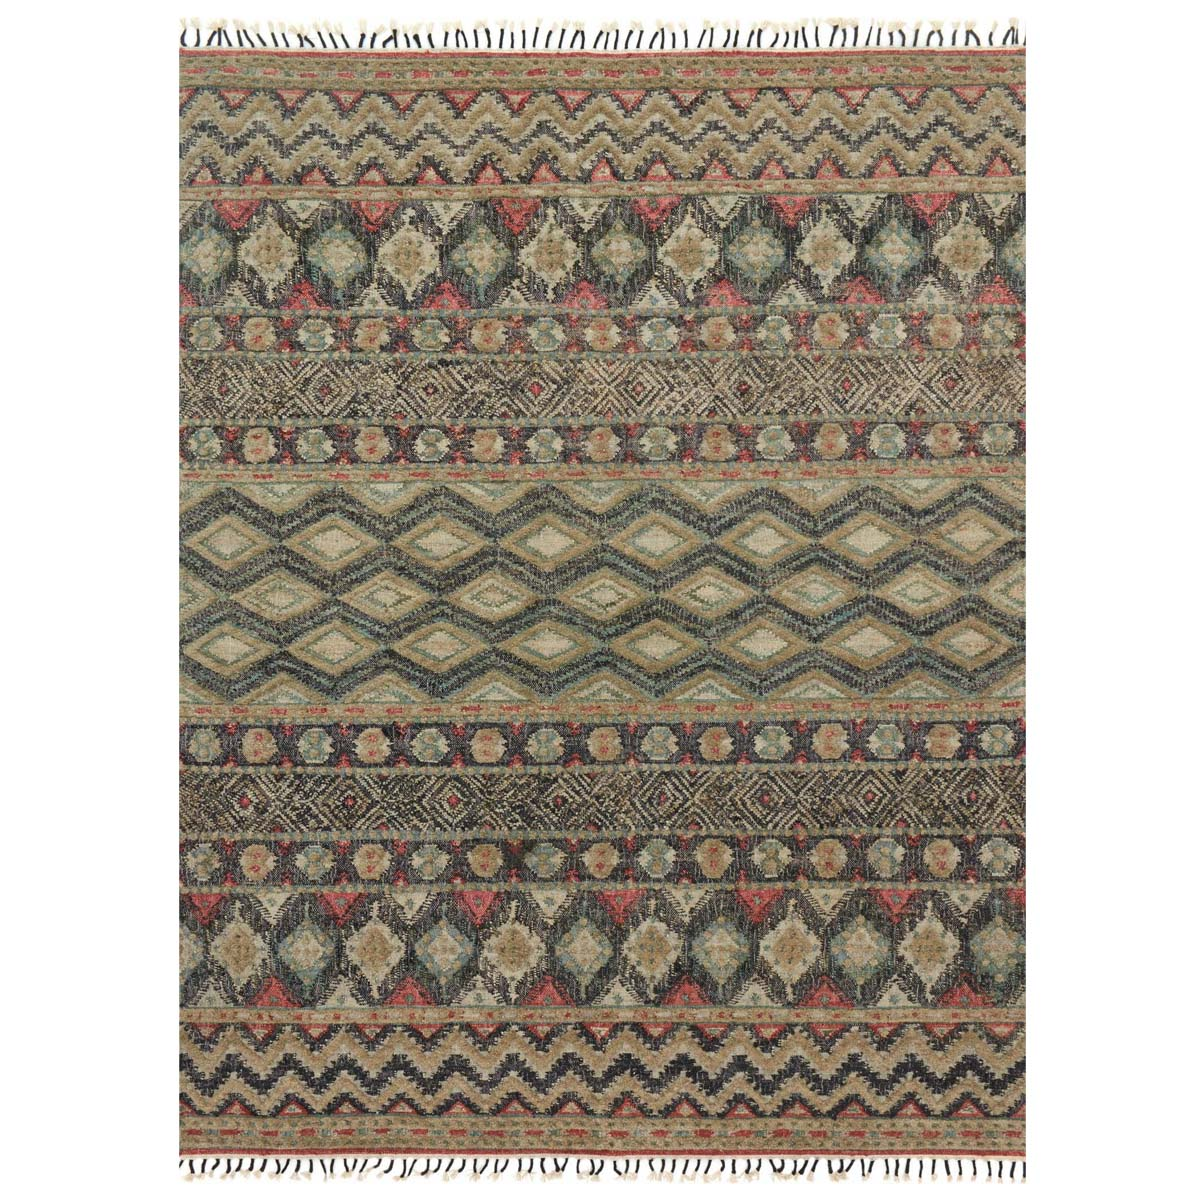 Zigzag Diamonds Rug - 3 x 10